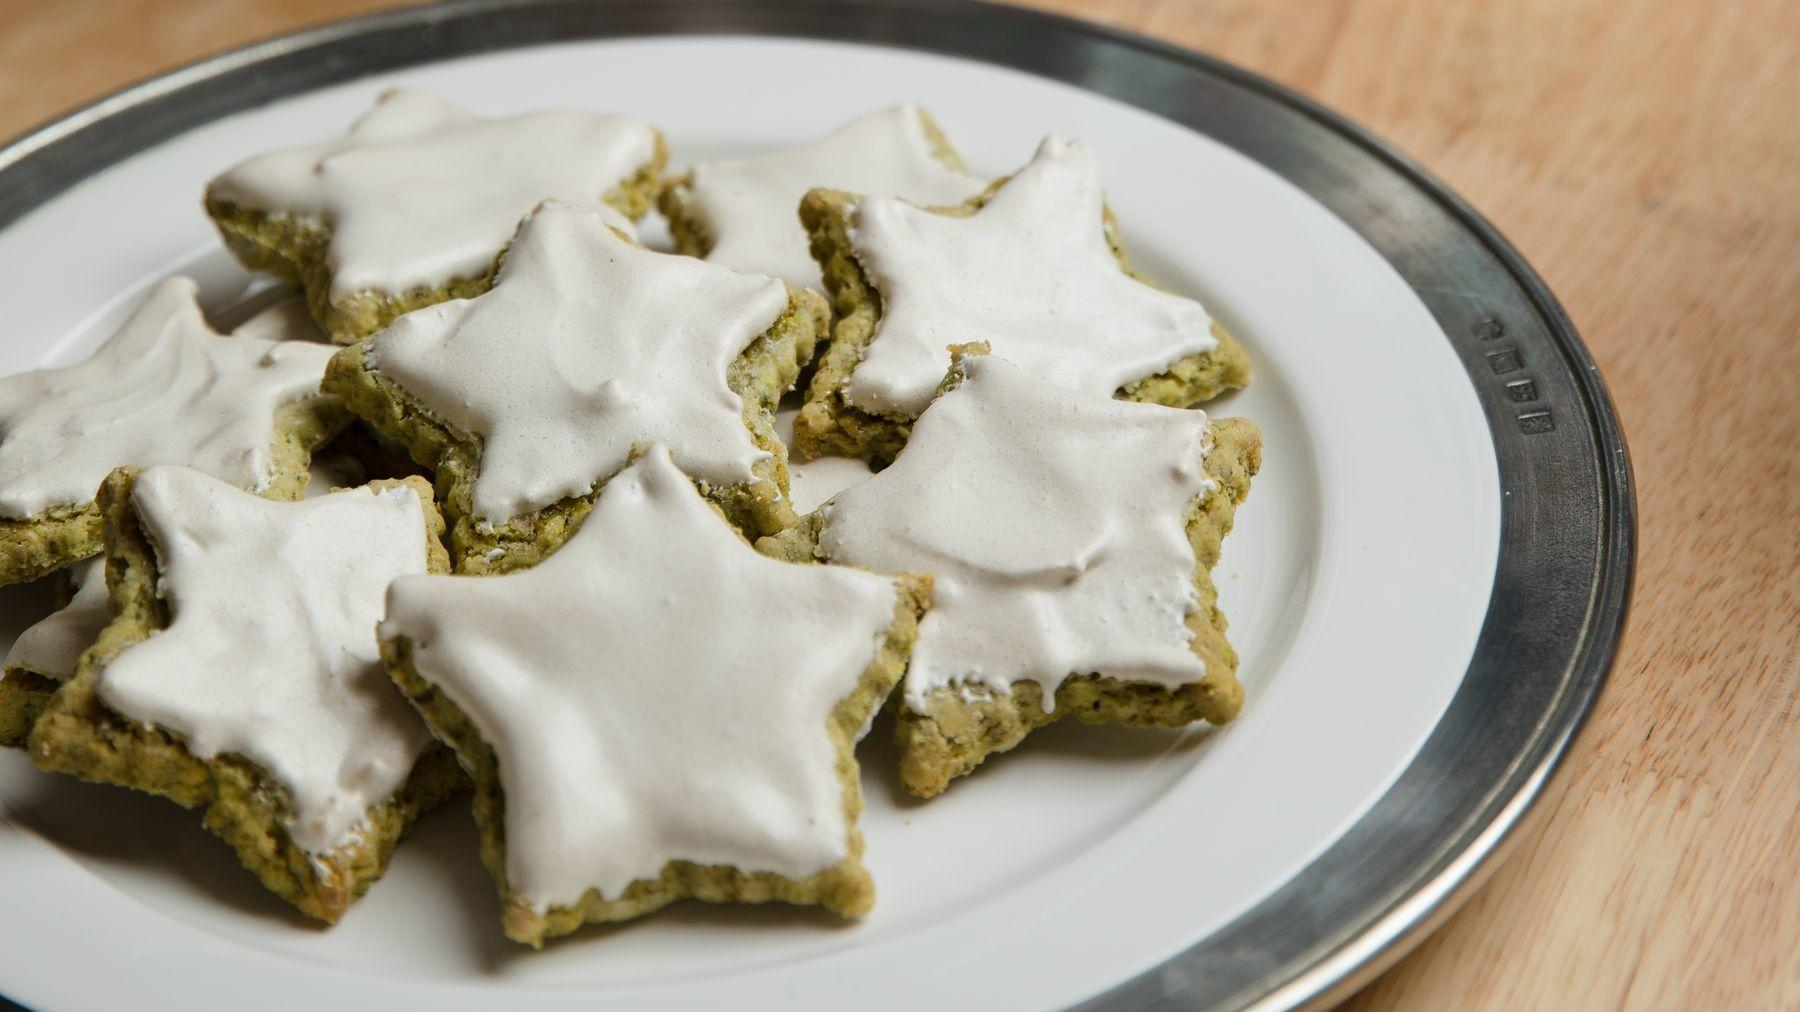 Pistachio holiday cookies from Vermont - The San Diego Union-Tribune